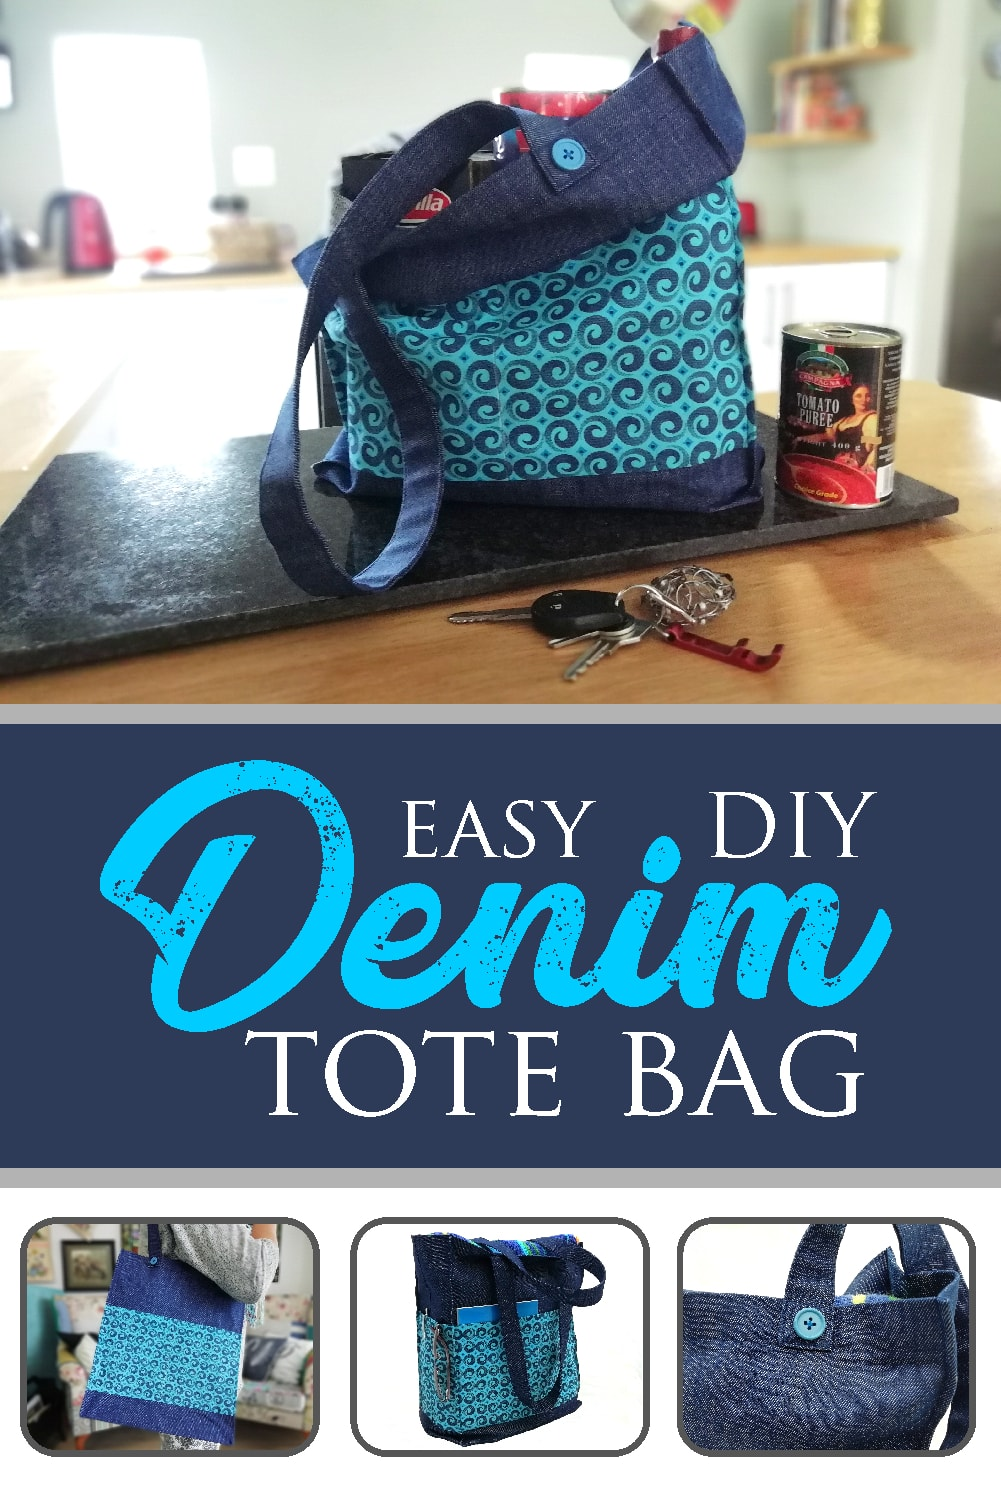 How to Sew a Tote Bag with Flat Bottom